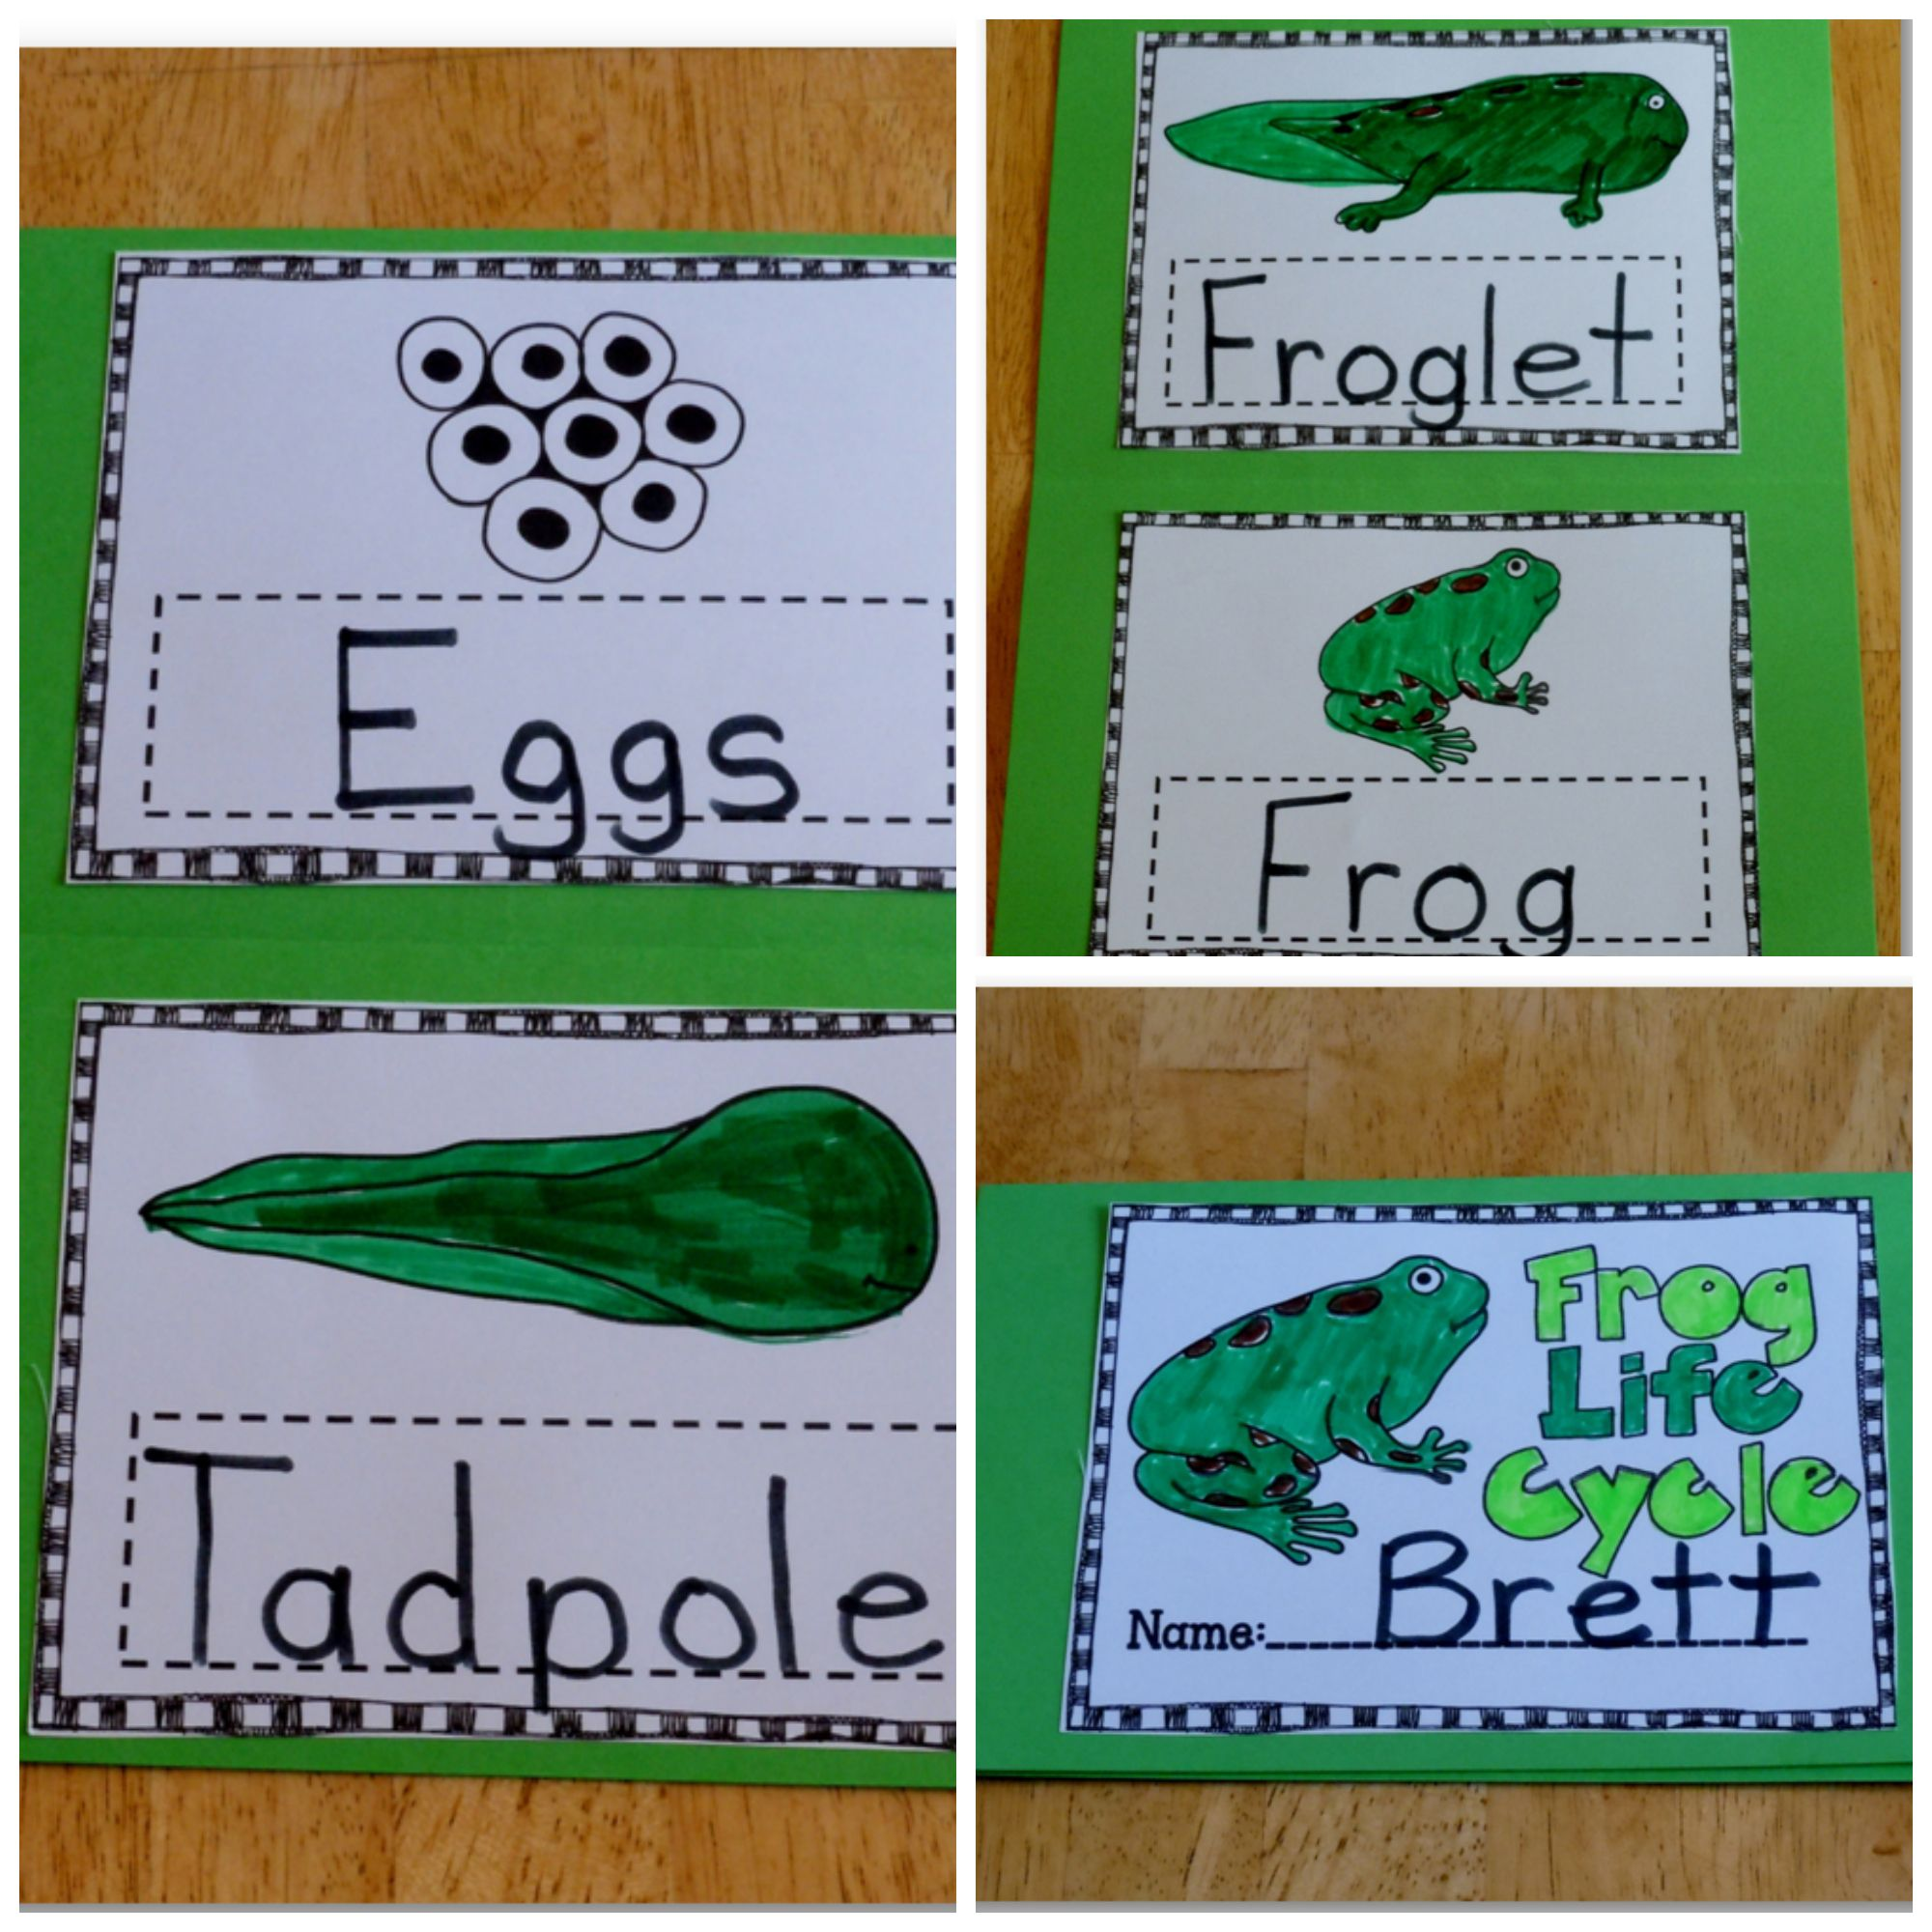 Frog Life Cycle With Images